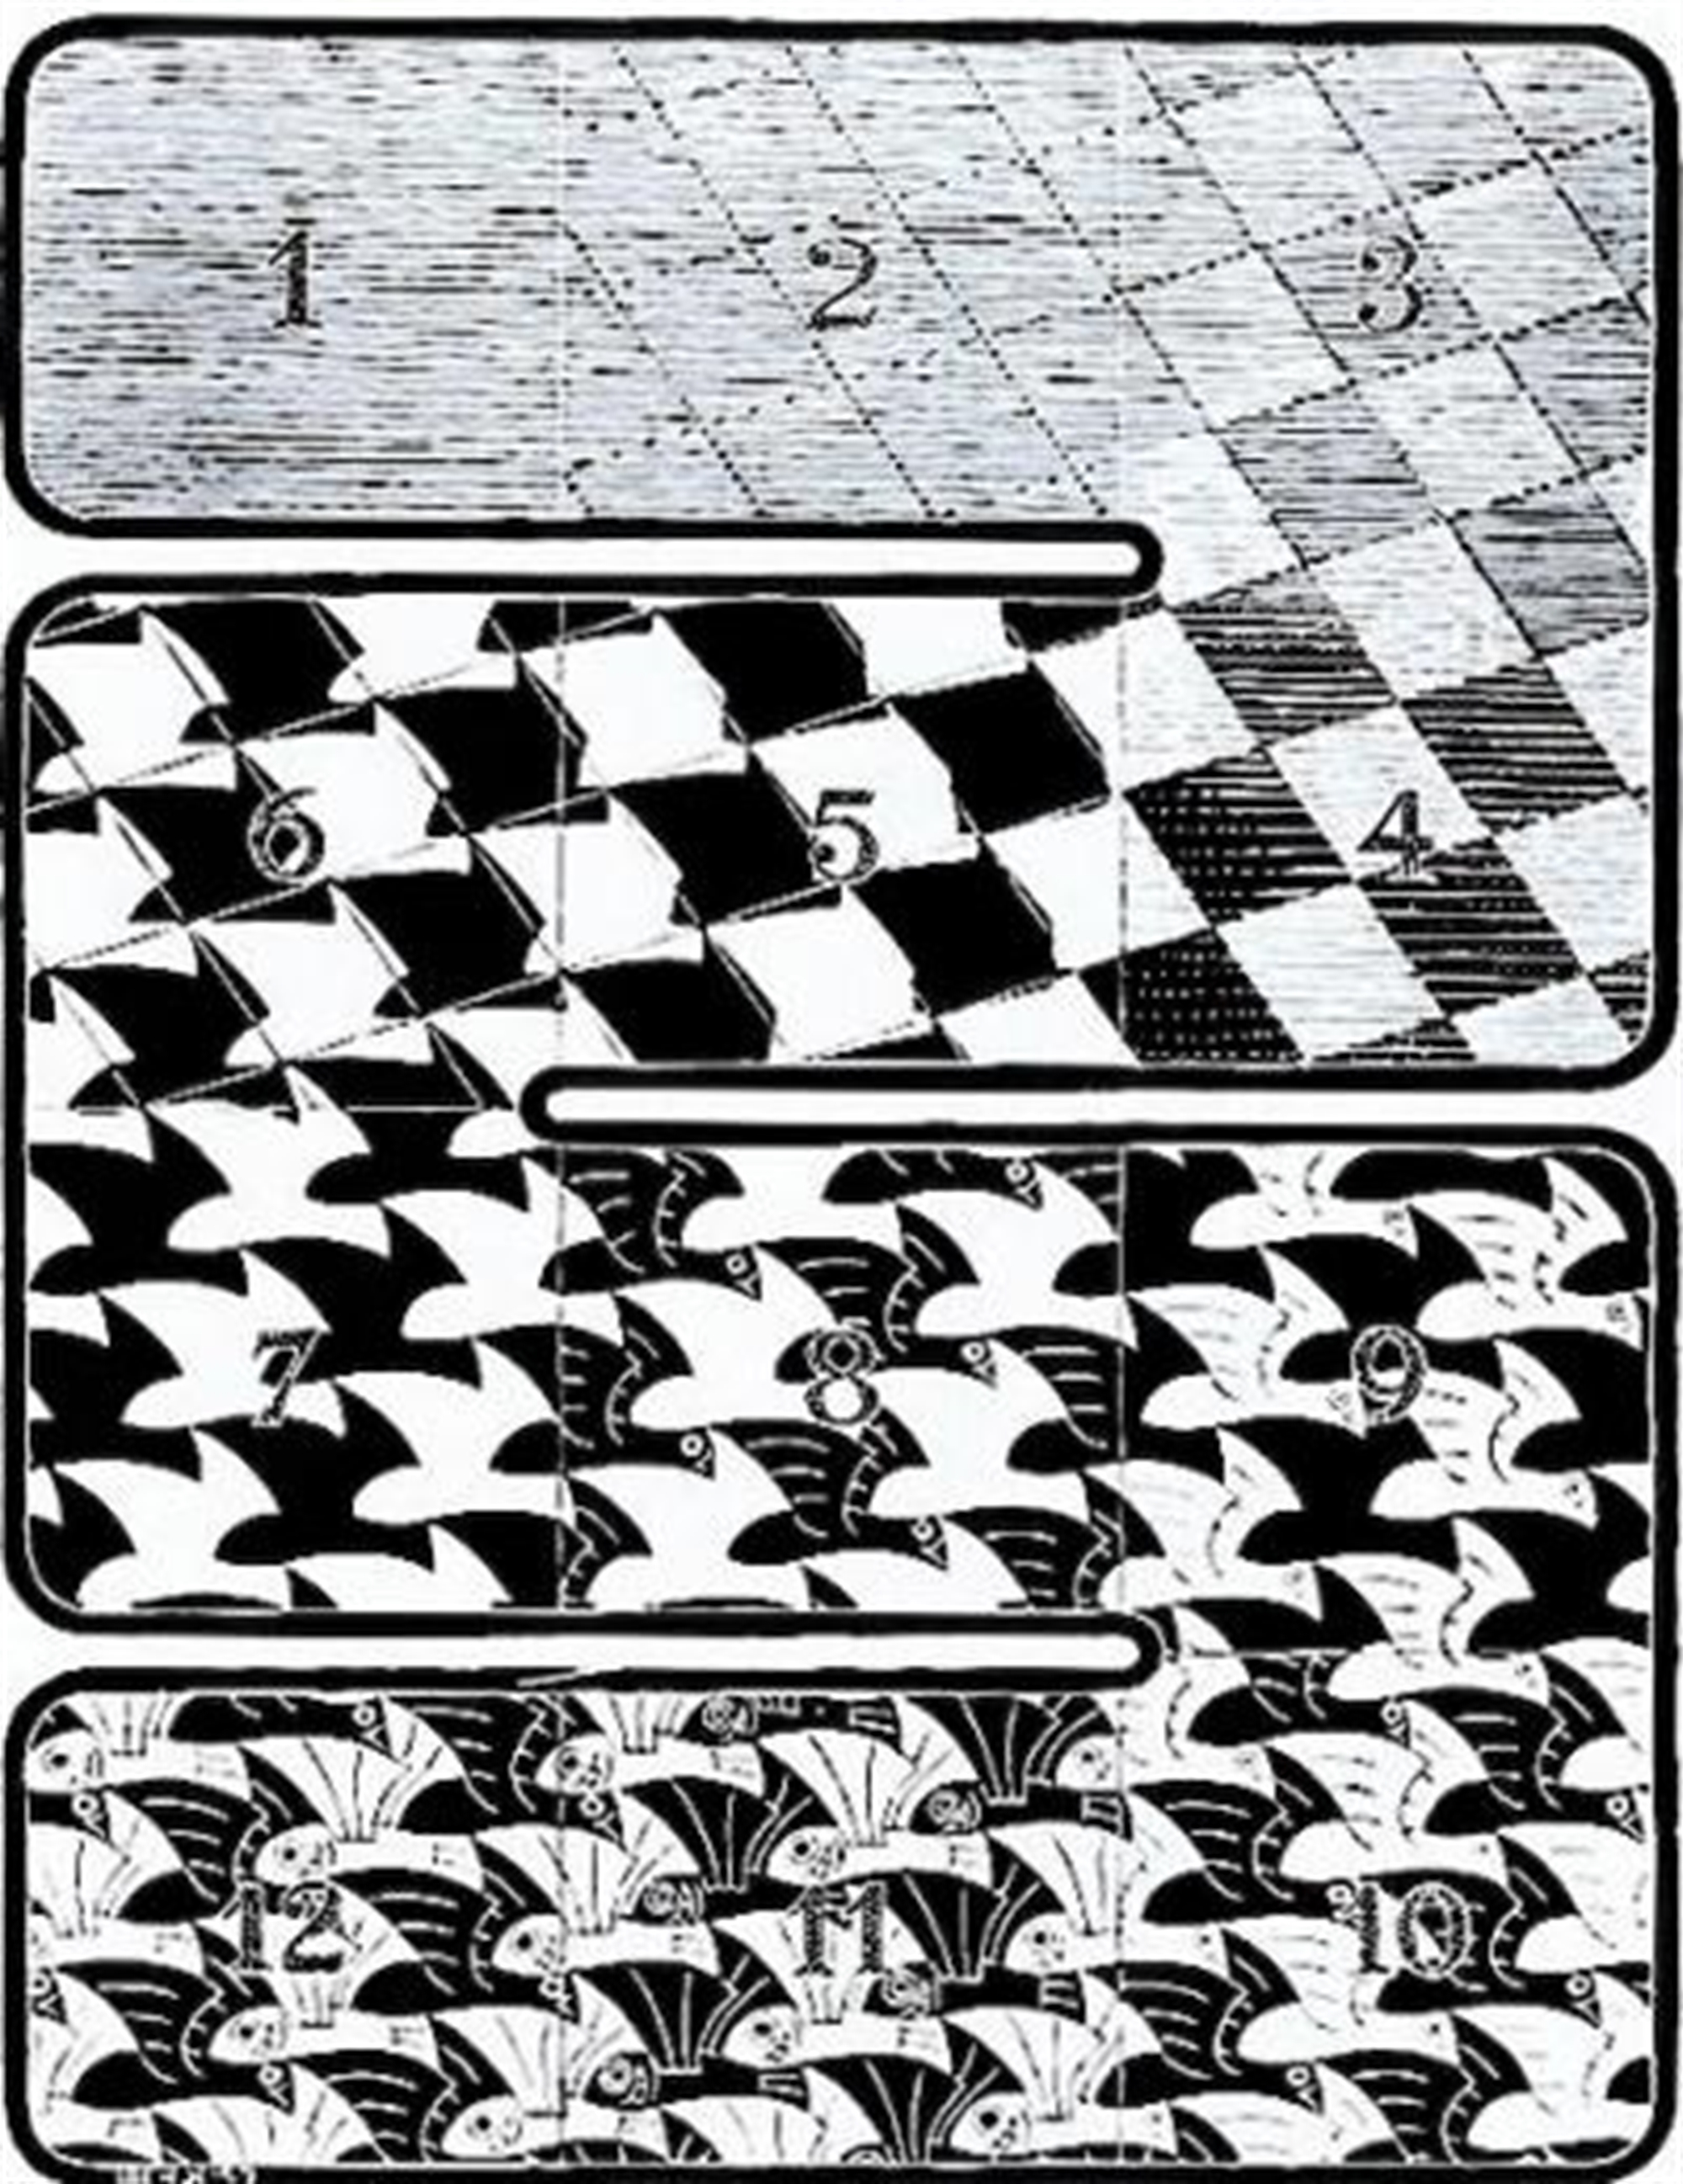 Regular Division of the Plane I by M.C. Escher